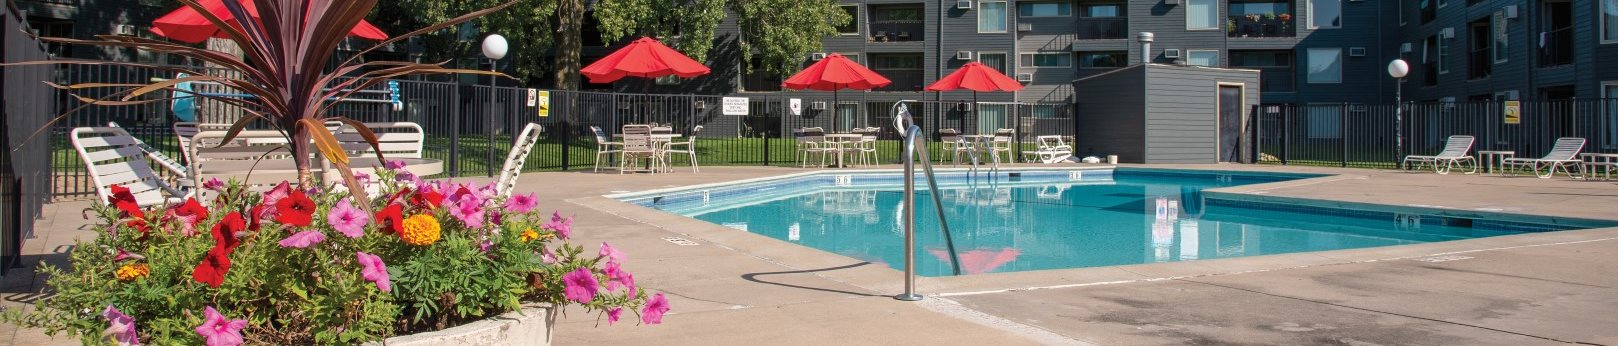 Swimming Pool And Sundeck at Hillsborough Apartments, Minnesota